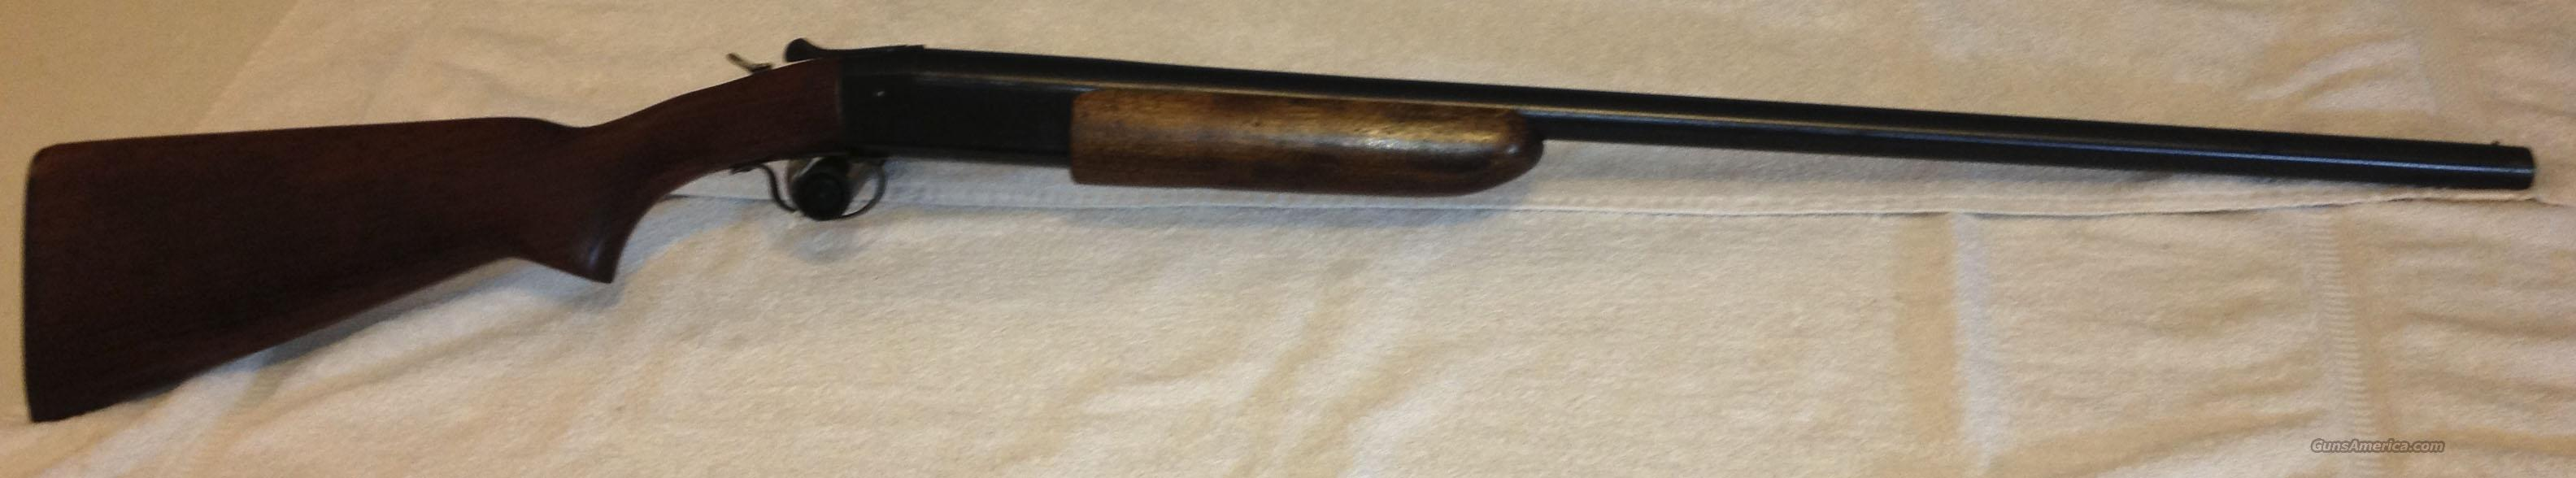 Winchester Model 37 16 GA  Guns > Shotguns > Winchester Shotguns - Modern > Bolt/Single Shot